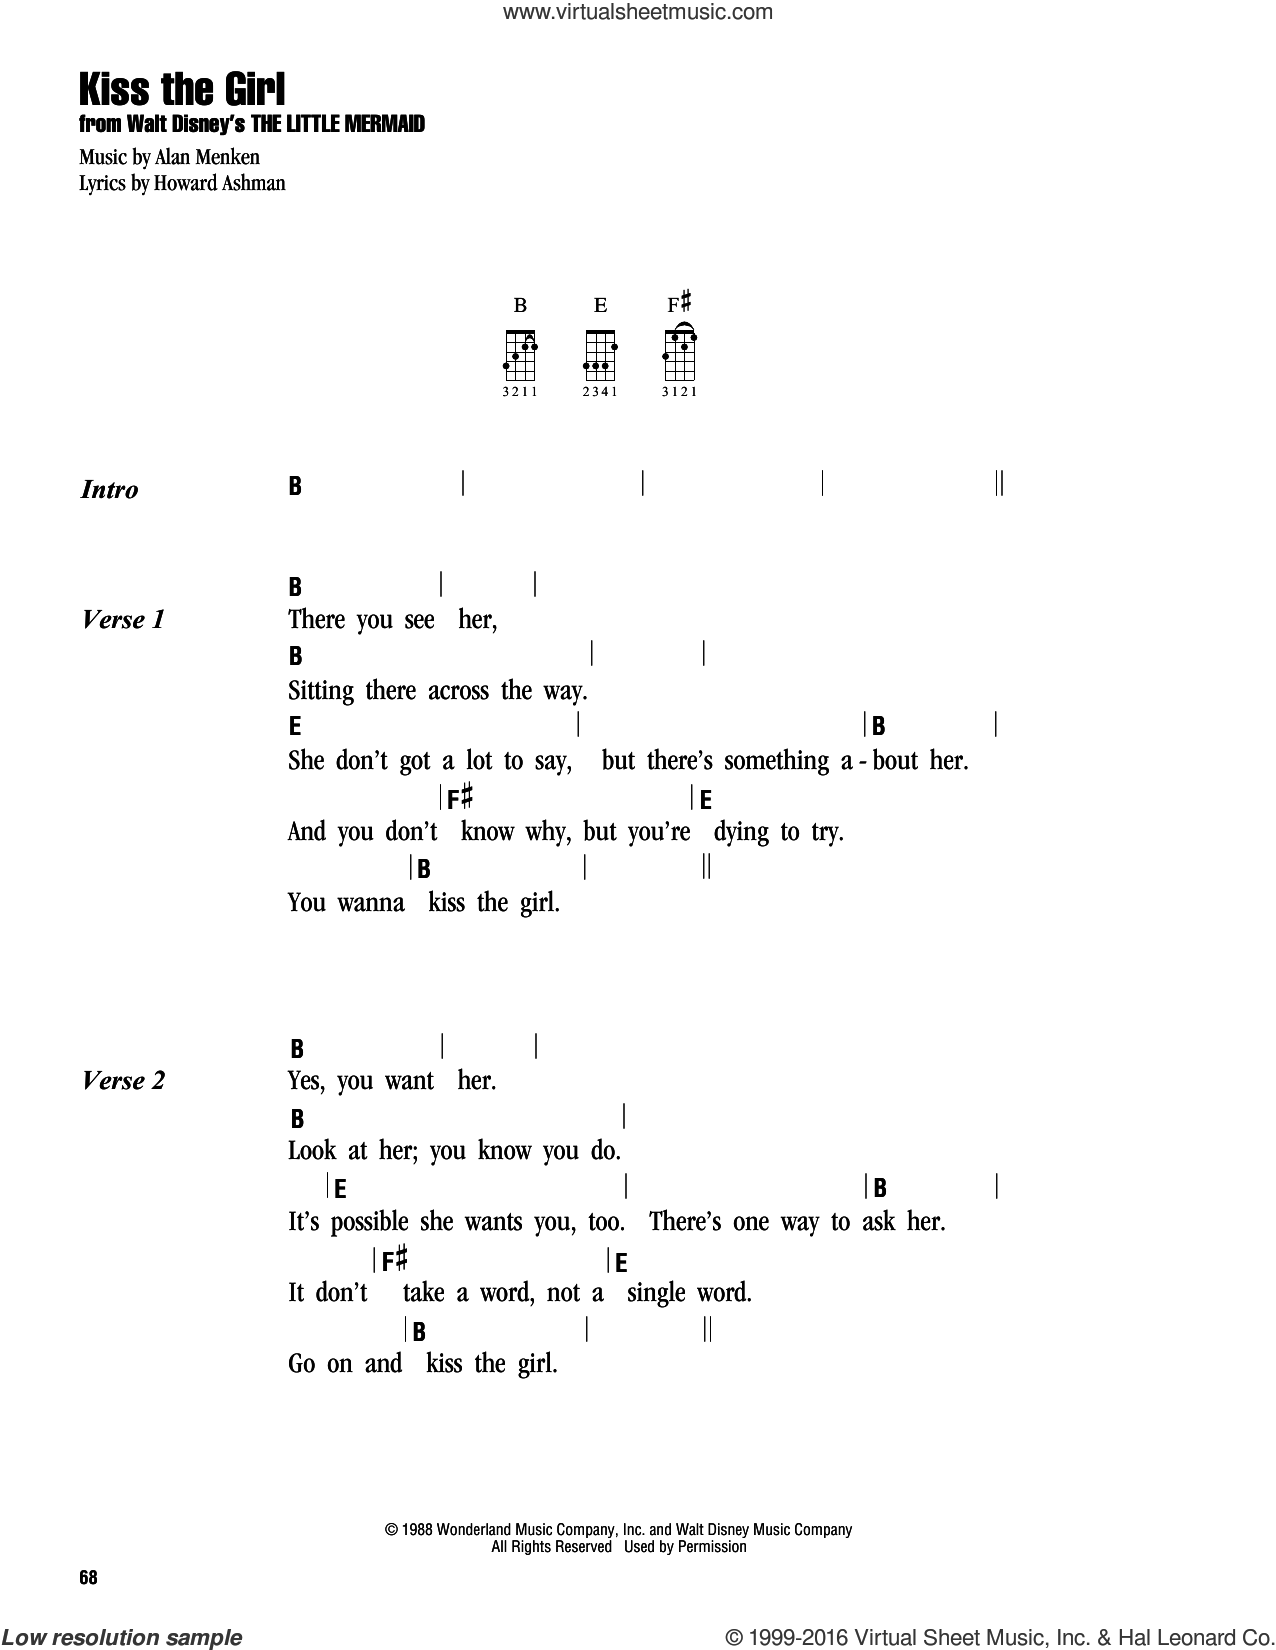 Kiss The Girl (from The Little Mermaid) sheet music for ukulele (chords) by Colbie Caillat, Little Texas, Alan Menken and Howard Ashman, intermediate skill level